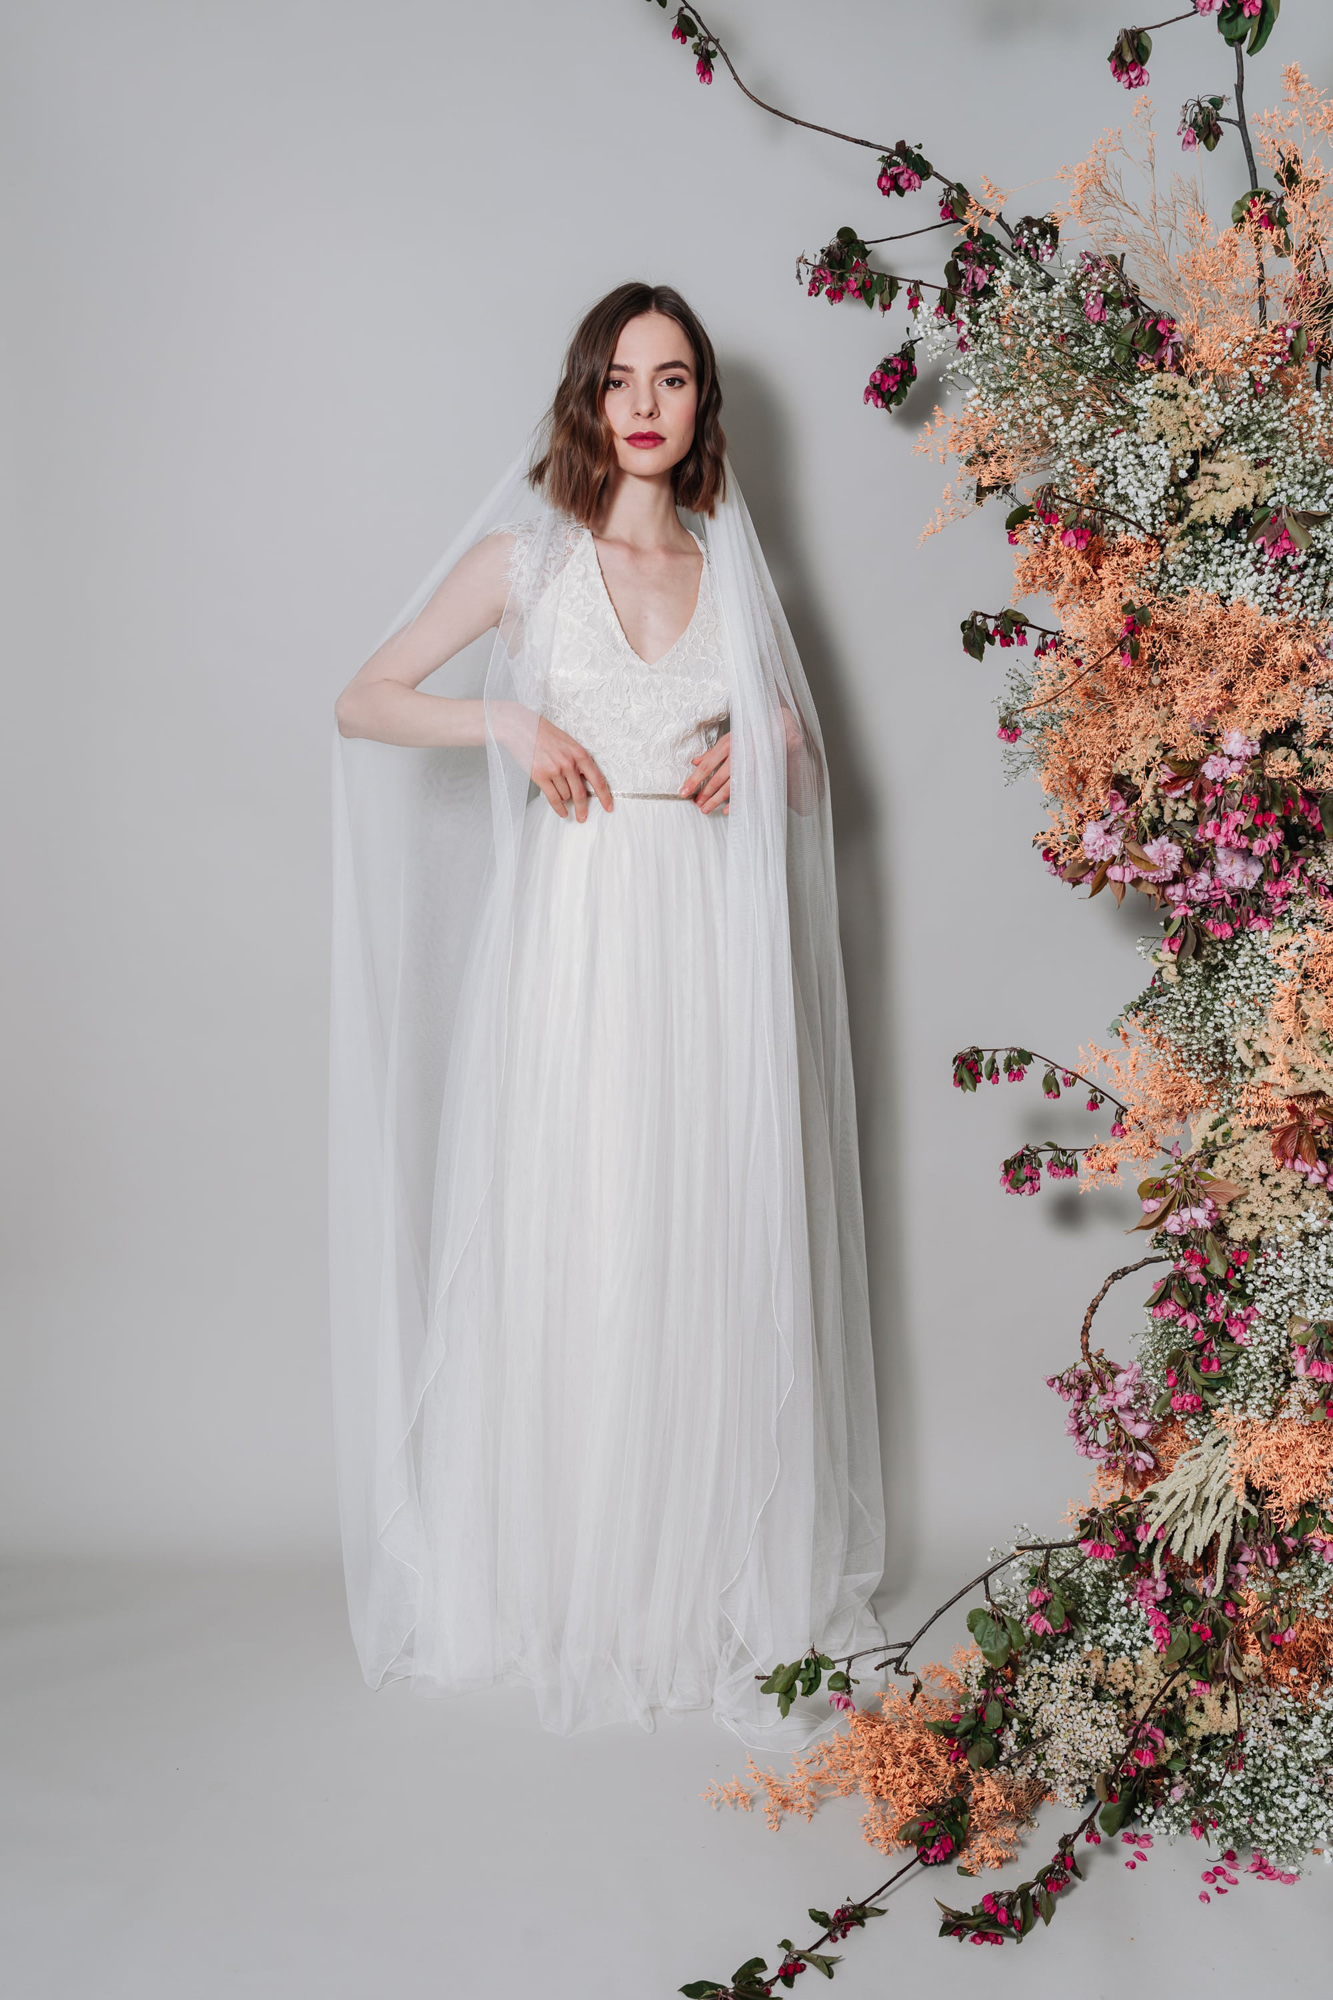 Kate-Beaumont-Sheffield-Mimosa-Lace-Tulle-Bohemian-Wedding-Gown-16.jpg